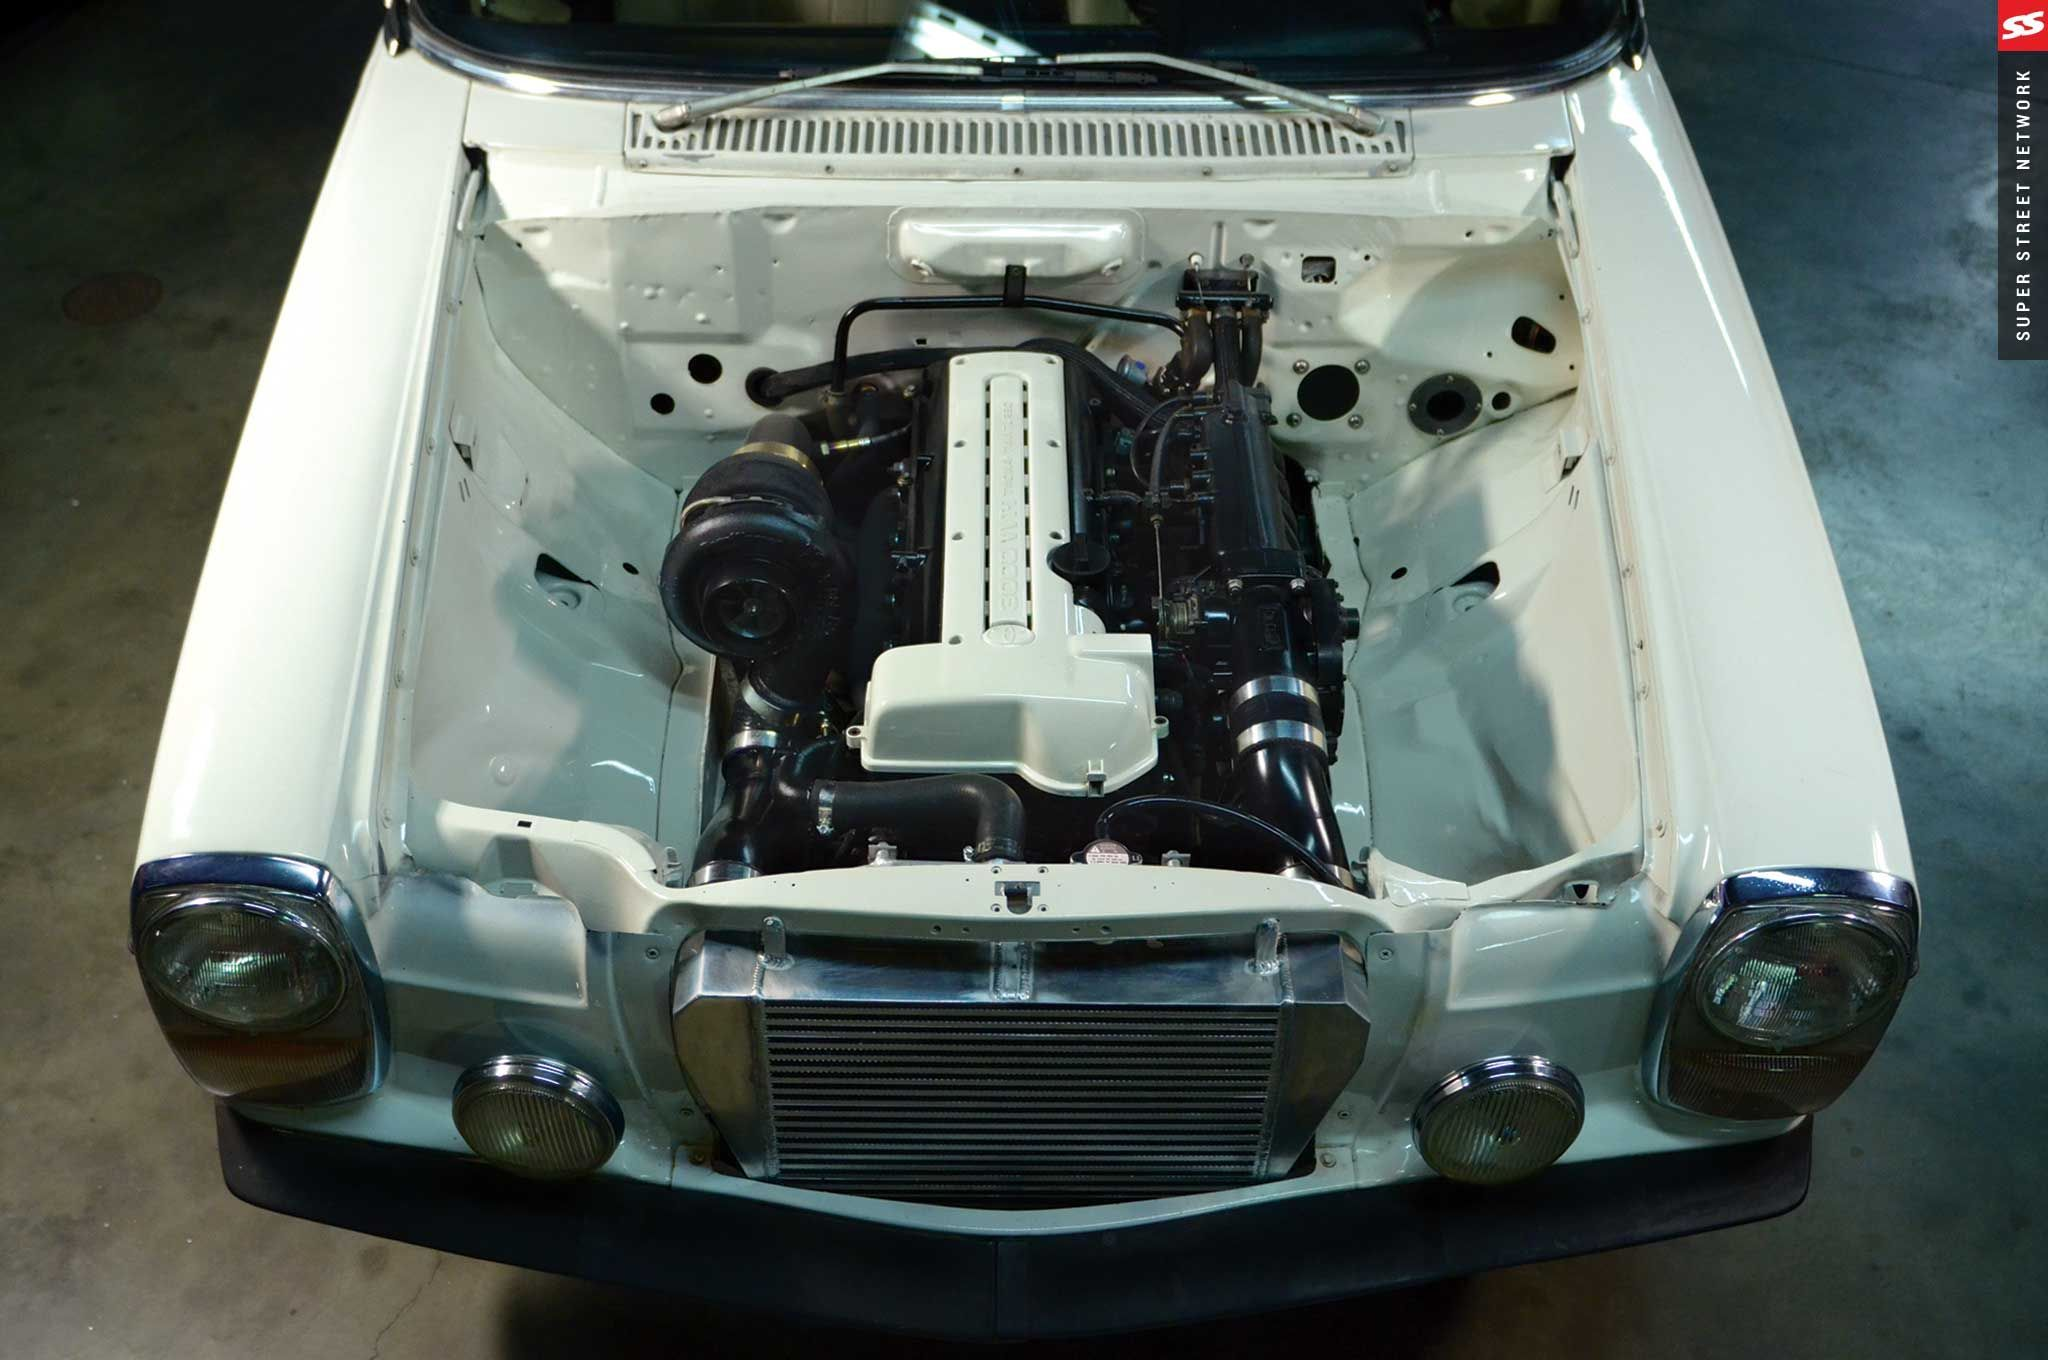 2jz Engine Fitted Into A W115 Mercedes 240d Notice How They Reduced The Size Of The Radiator And Pushed It Forward To Mercedes Mercedes W114 Classic Mercedes